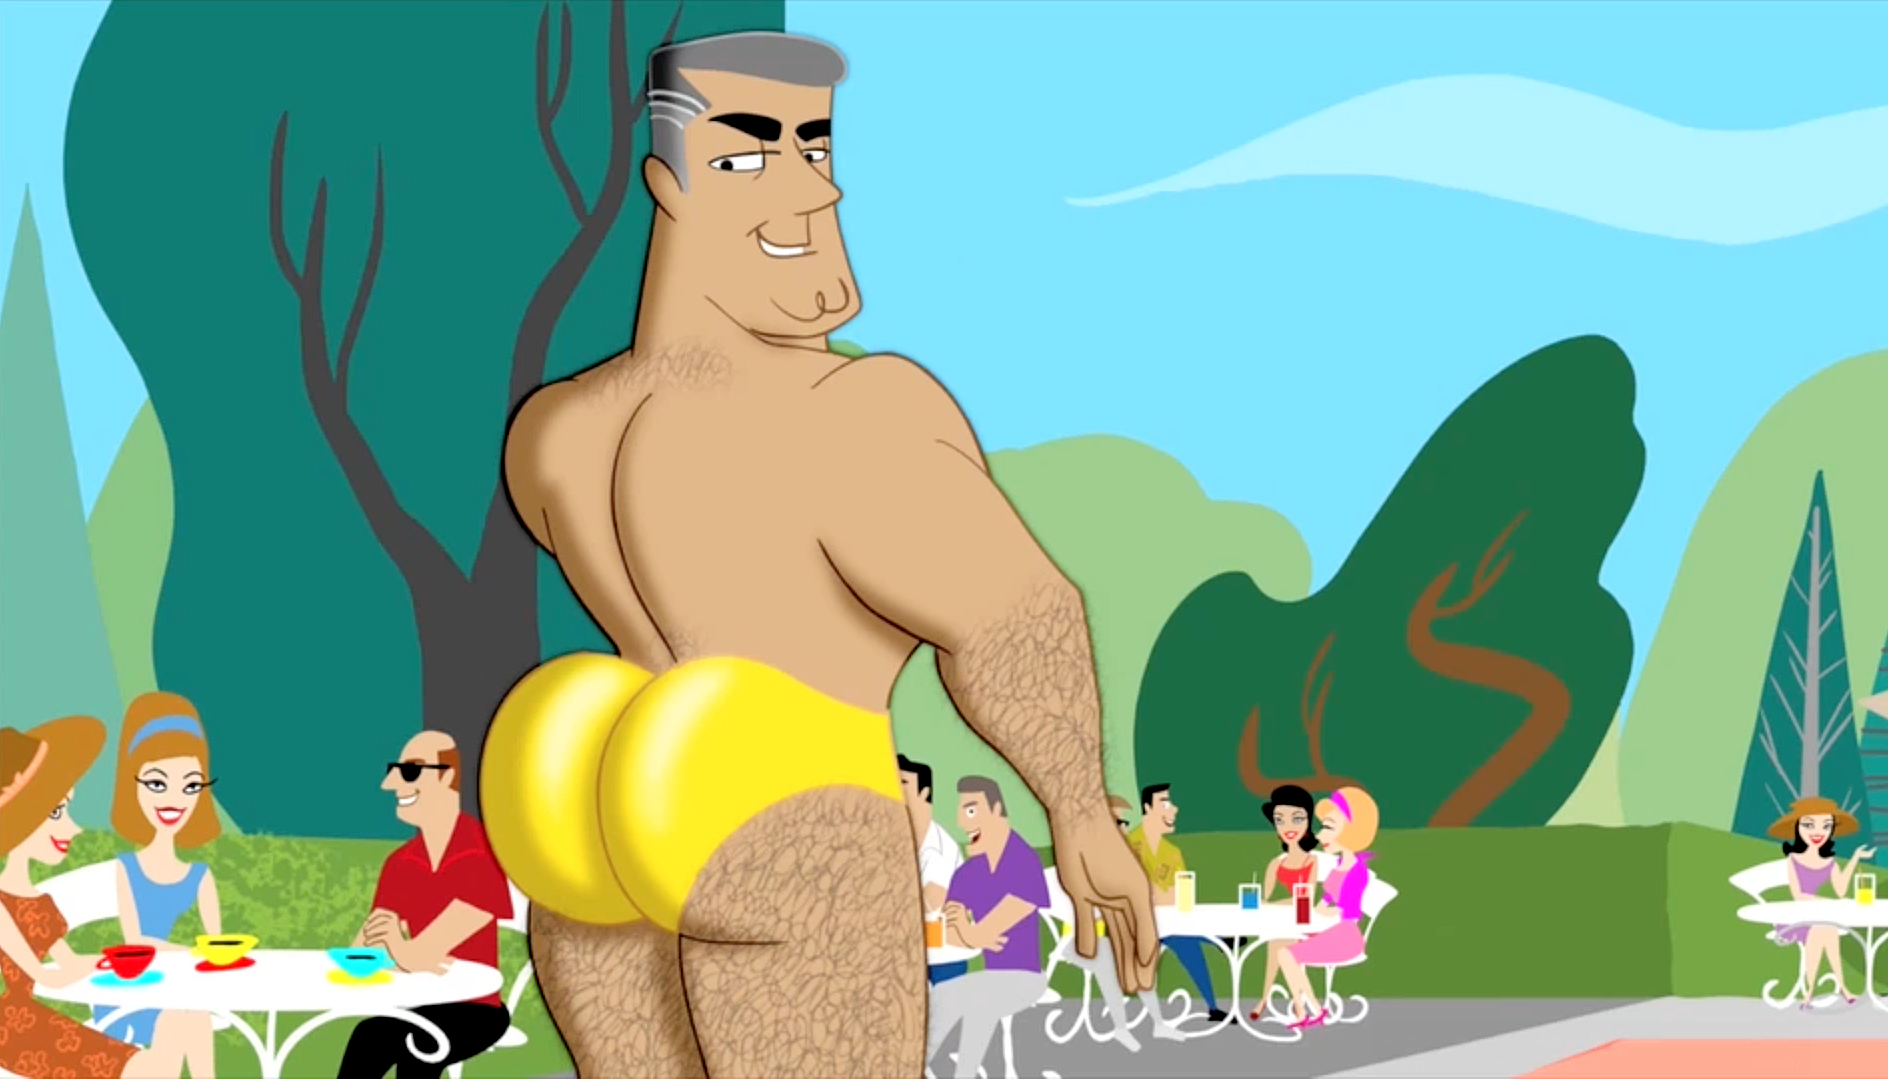 The best gay erotic animation and illustration of 2014